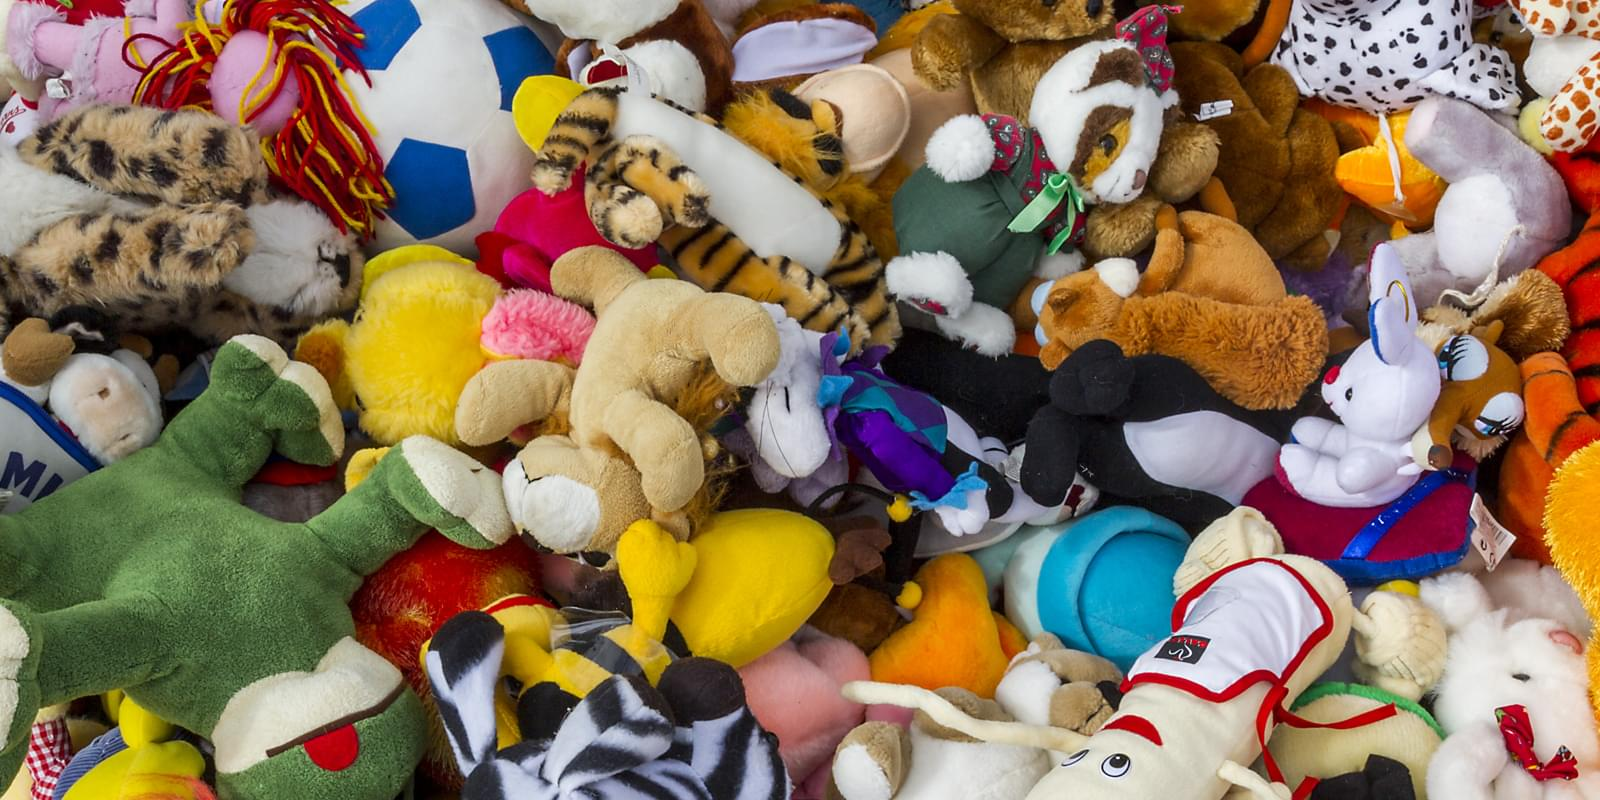 picture of stuffed toys